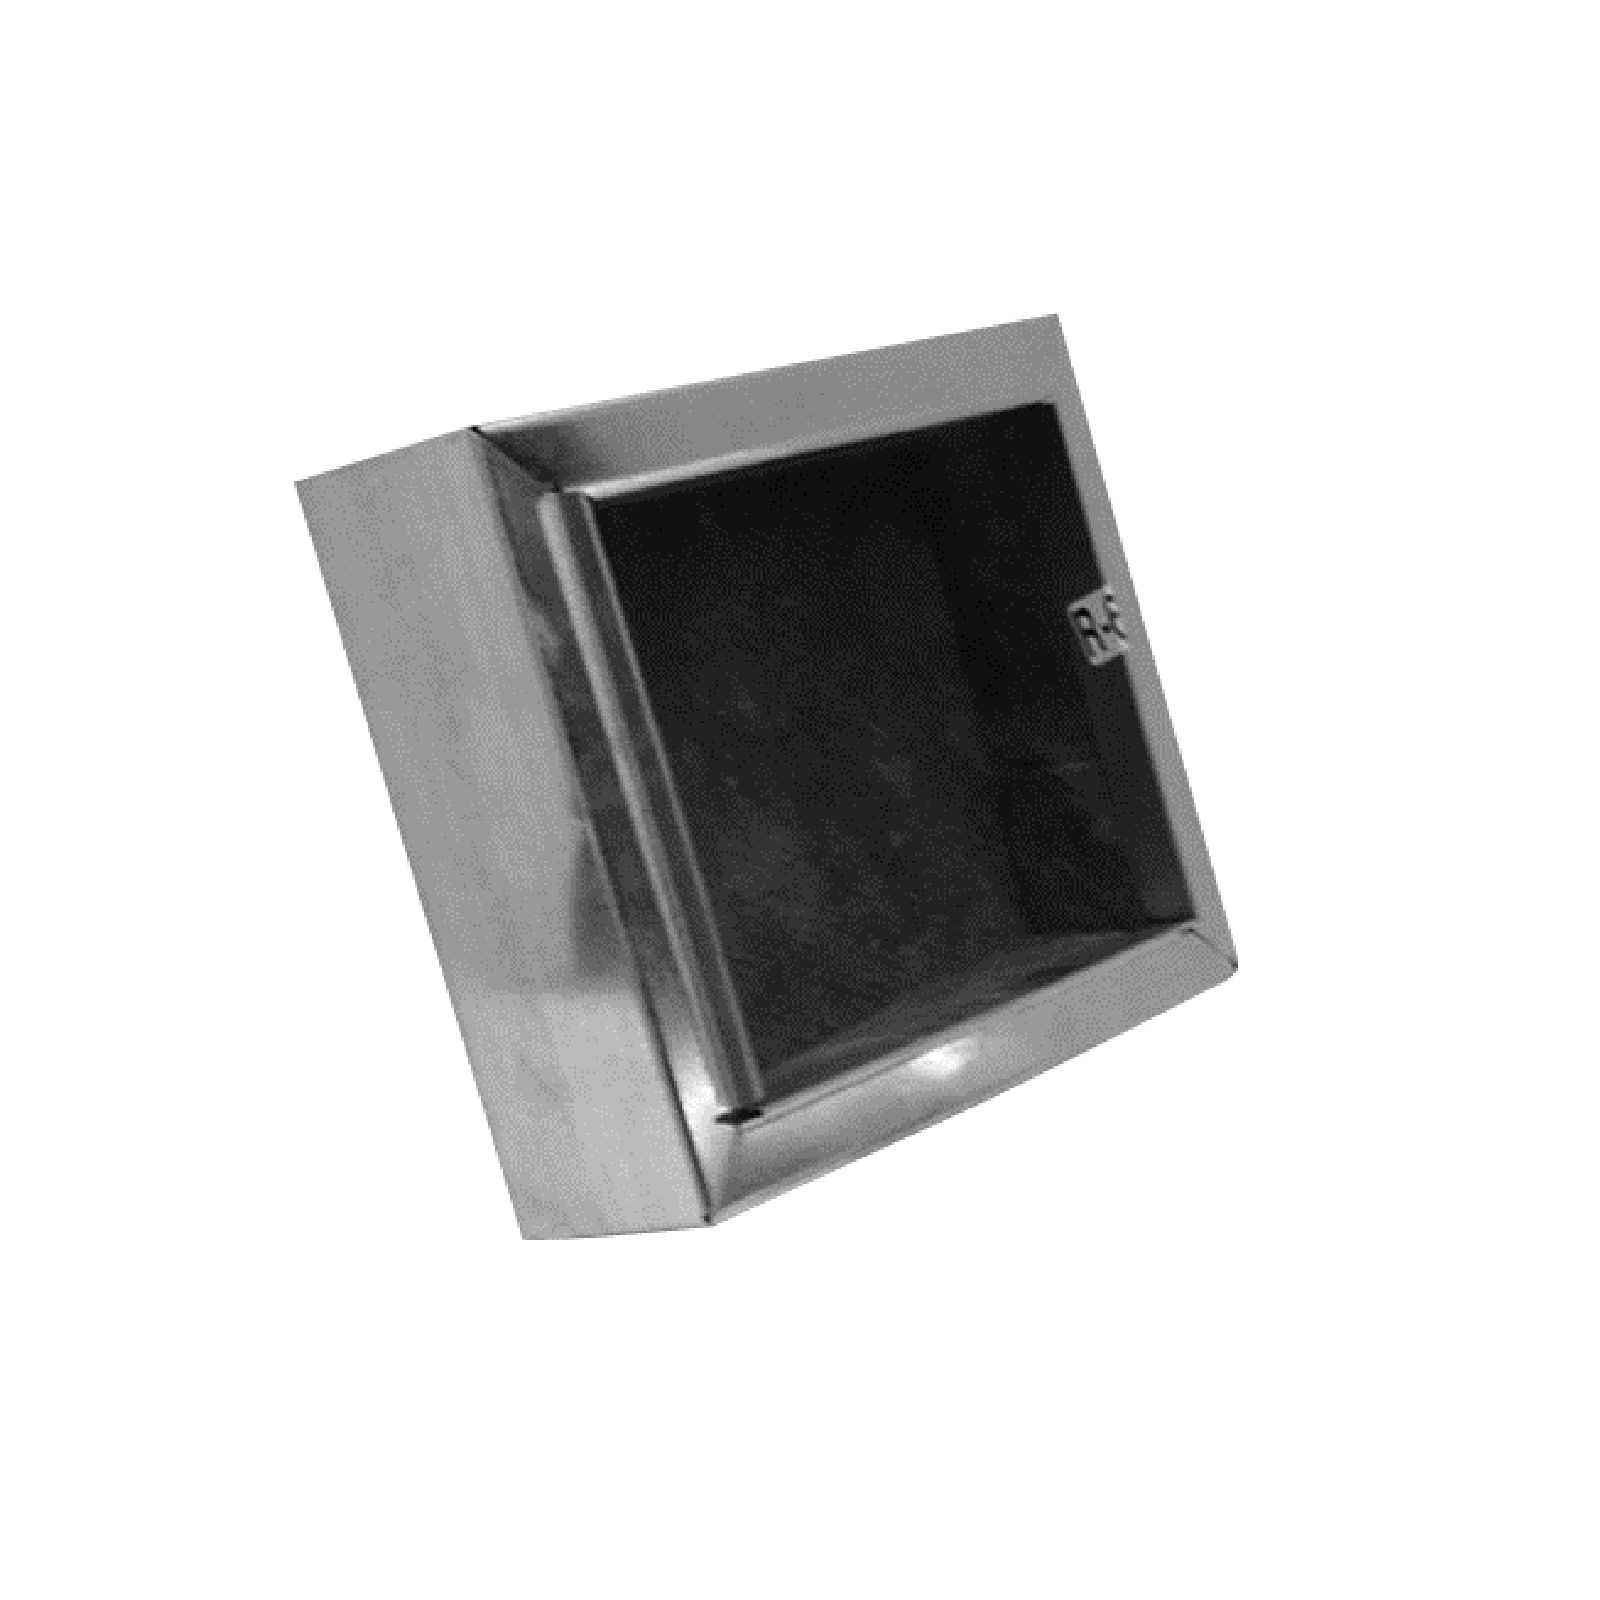 "Mitchell Metal 45R81008 - 10"" X 8"" Ductboard Register Box- R8 Ductboard Applications"